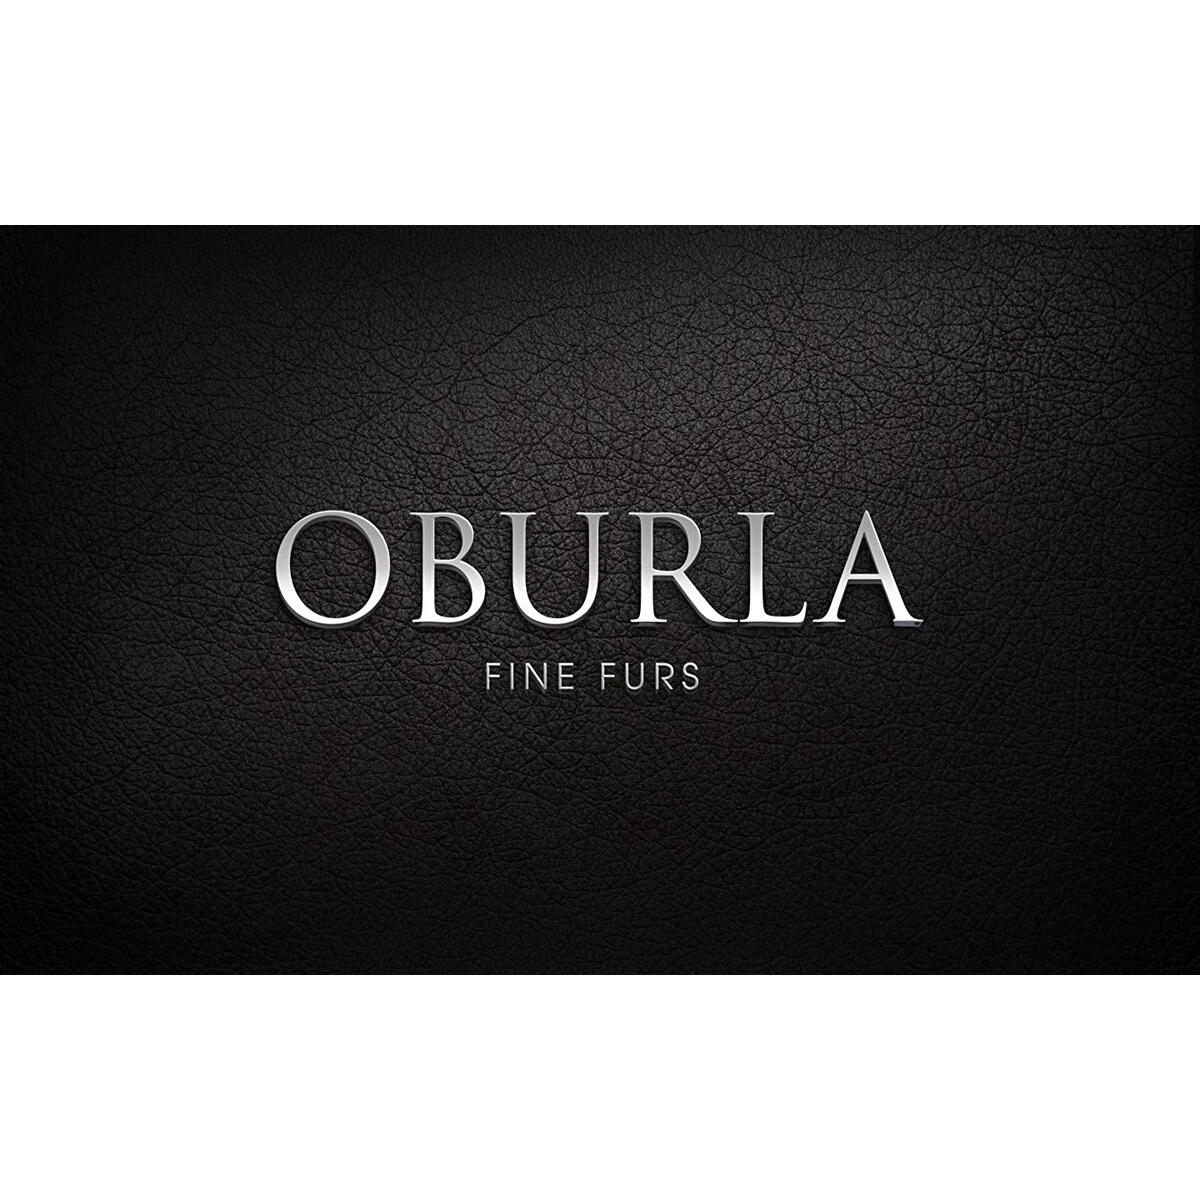 OBURLA Women's Genuine Rex Rabbit Fur Shawl with Slit | Soft and Luxurious Real Fur Wrap | Evening and Bridal Cape Stole